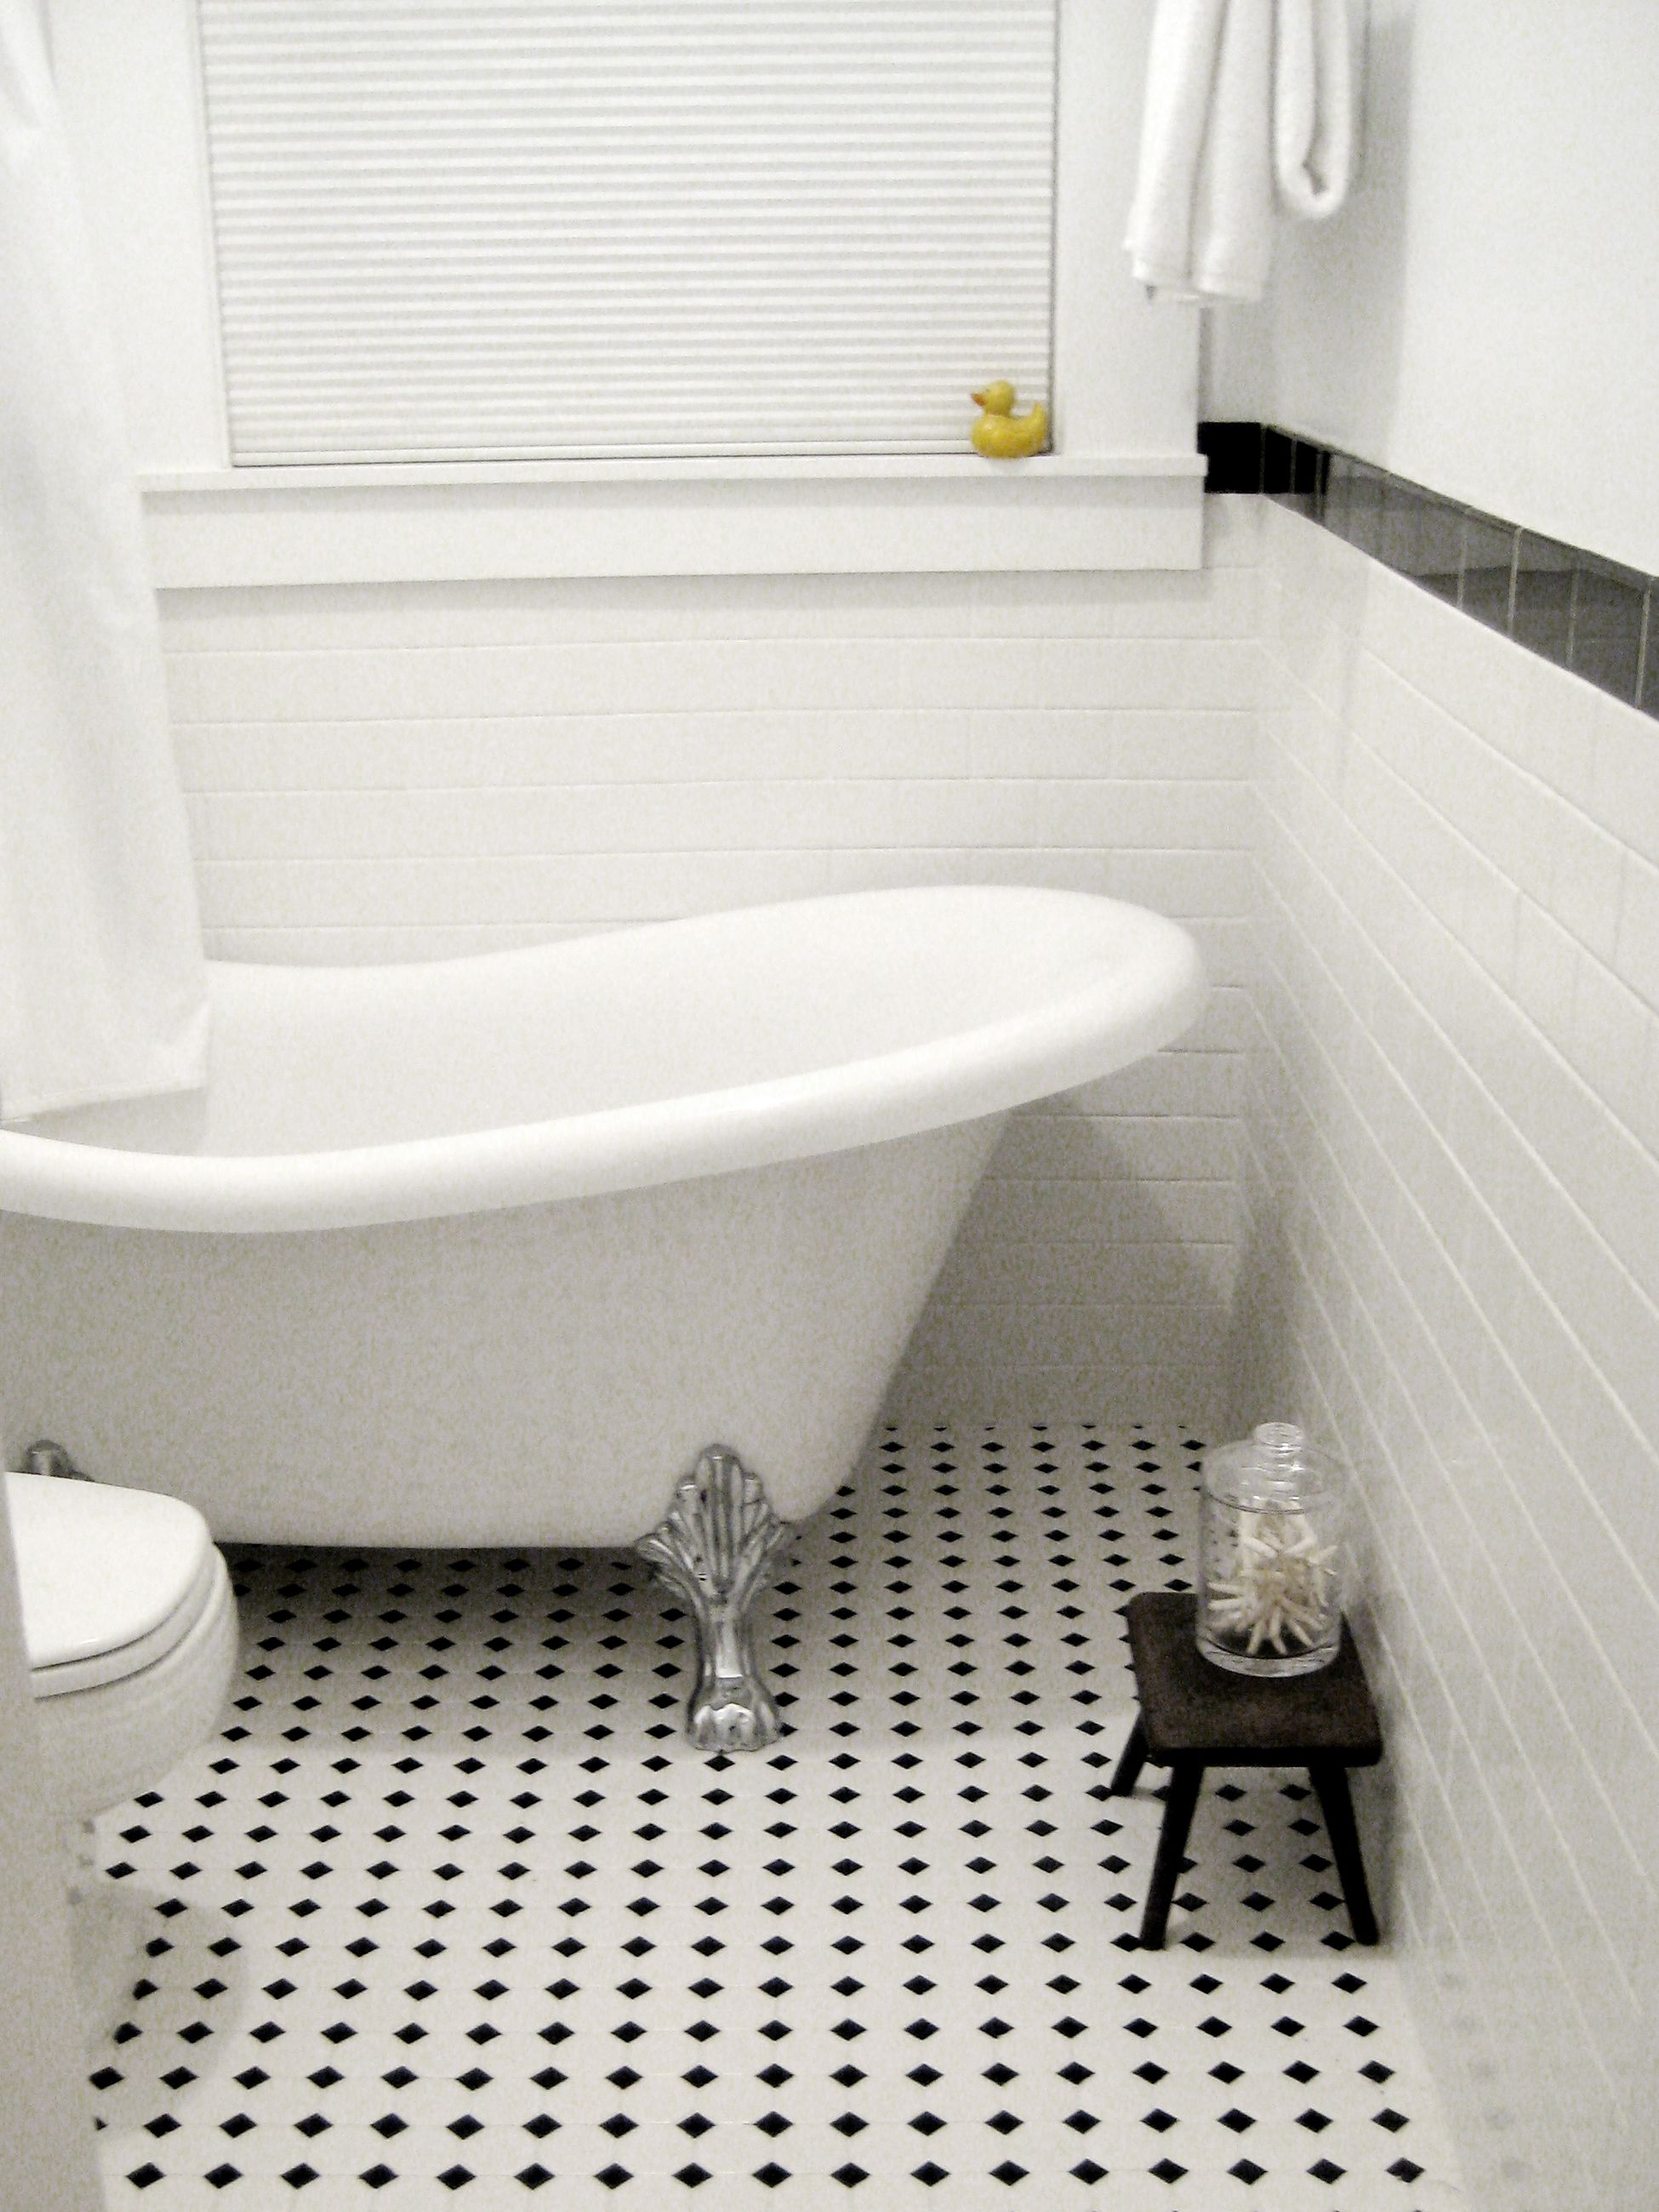 Black And White Tile Clawfoot Tub Duck Bathroom Pinterest White Tiles A